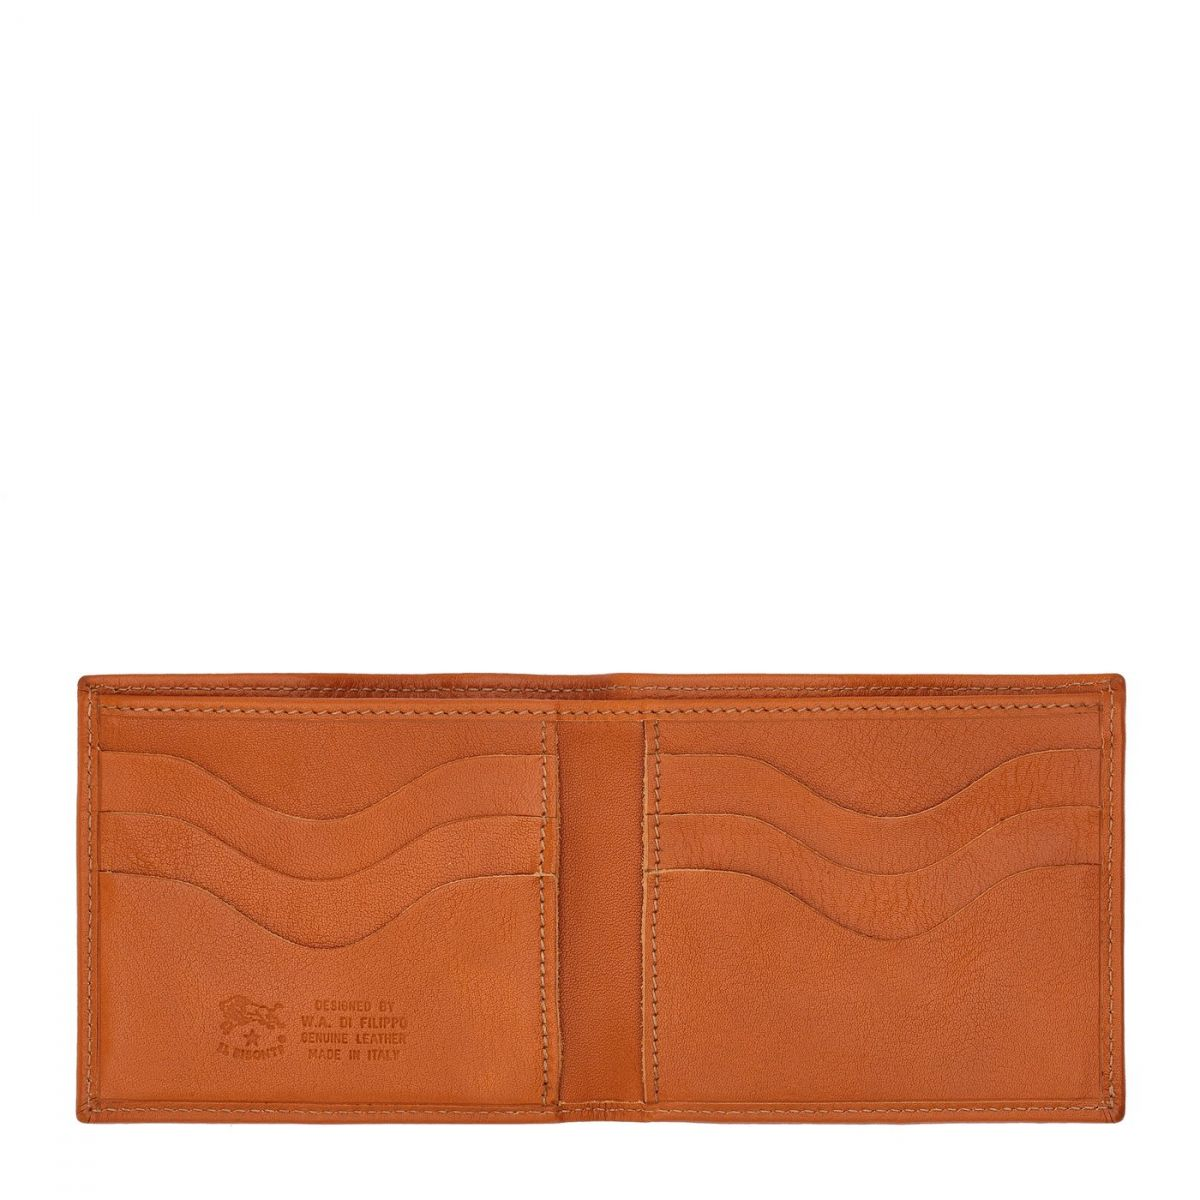 Men's Bi-Fold Wallet  in Cowhide Double Leather SBW029 color Caramel | Details